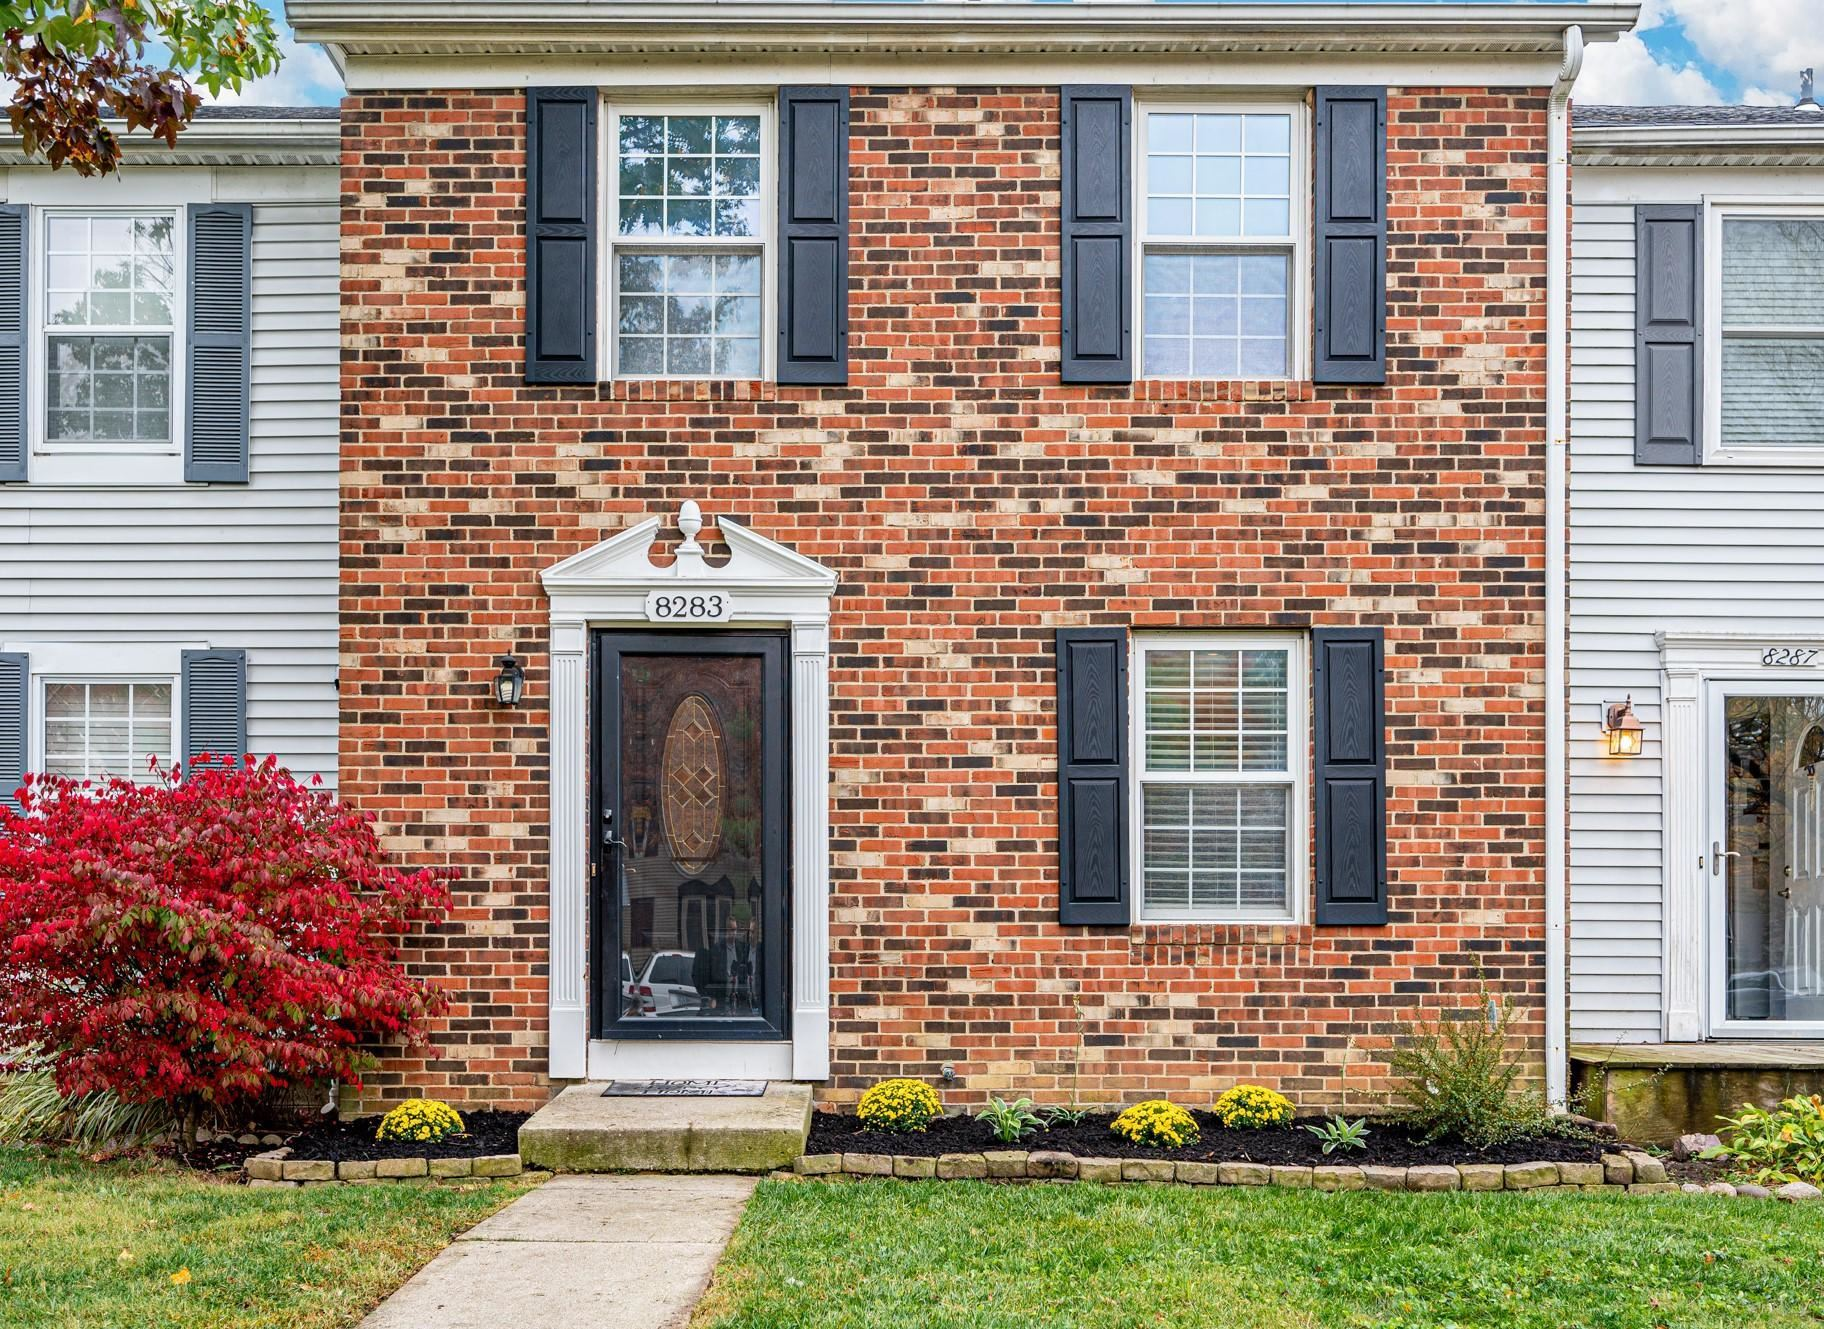 Photo of 8283 Lariat Court, Powell, OH 43065 (MLS # 220038070)